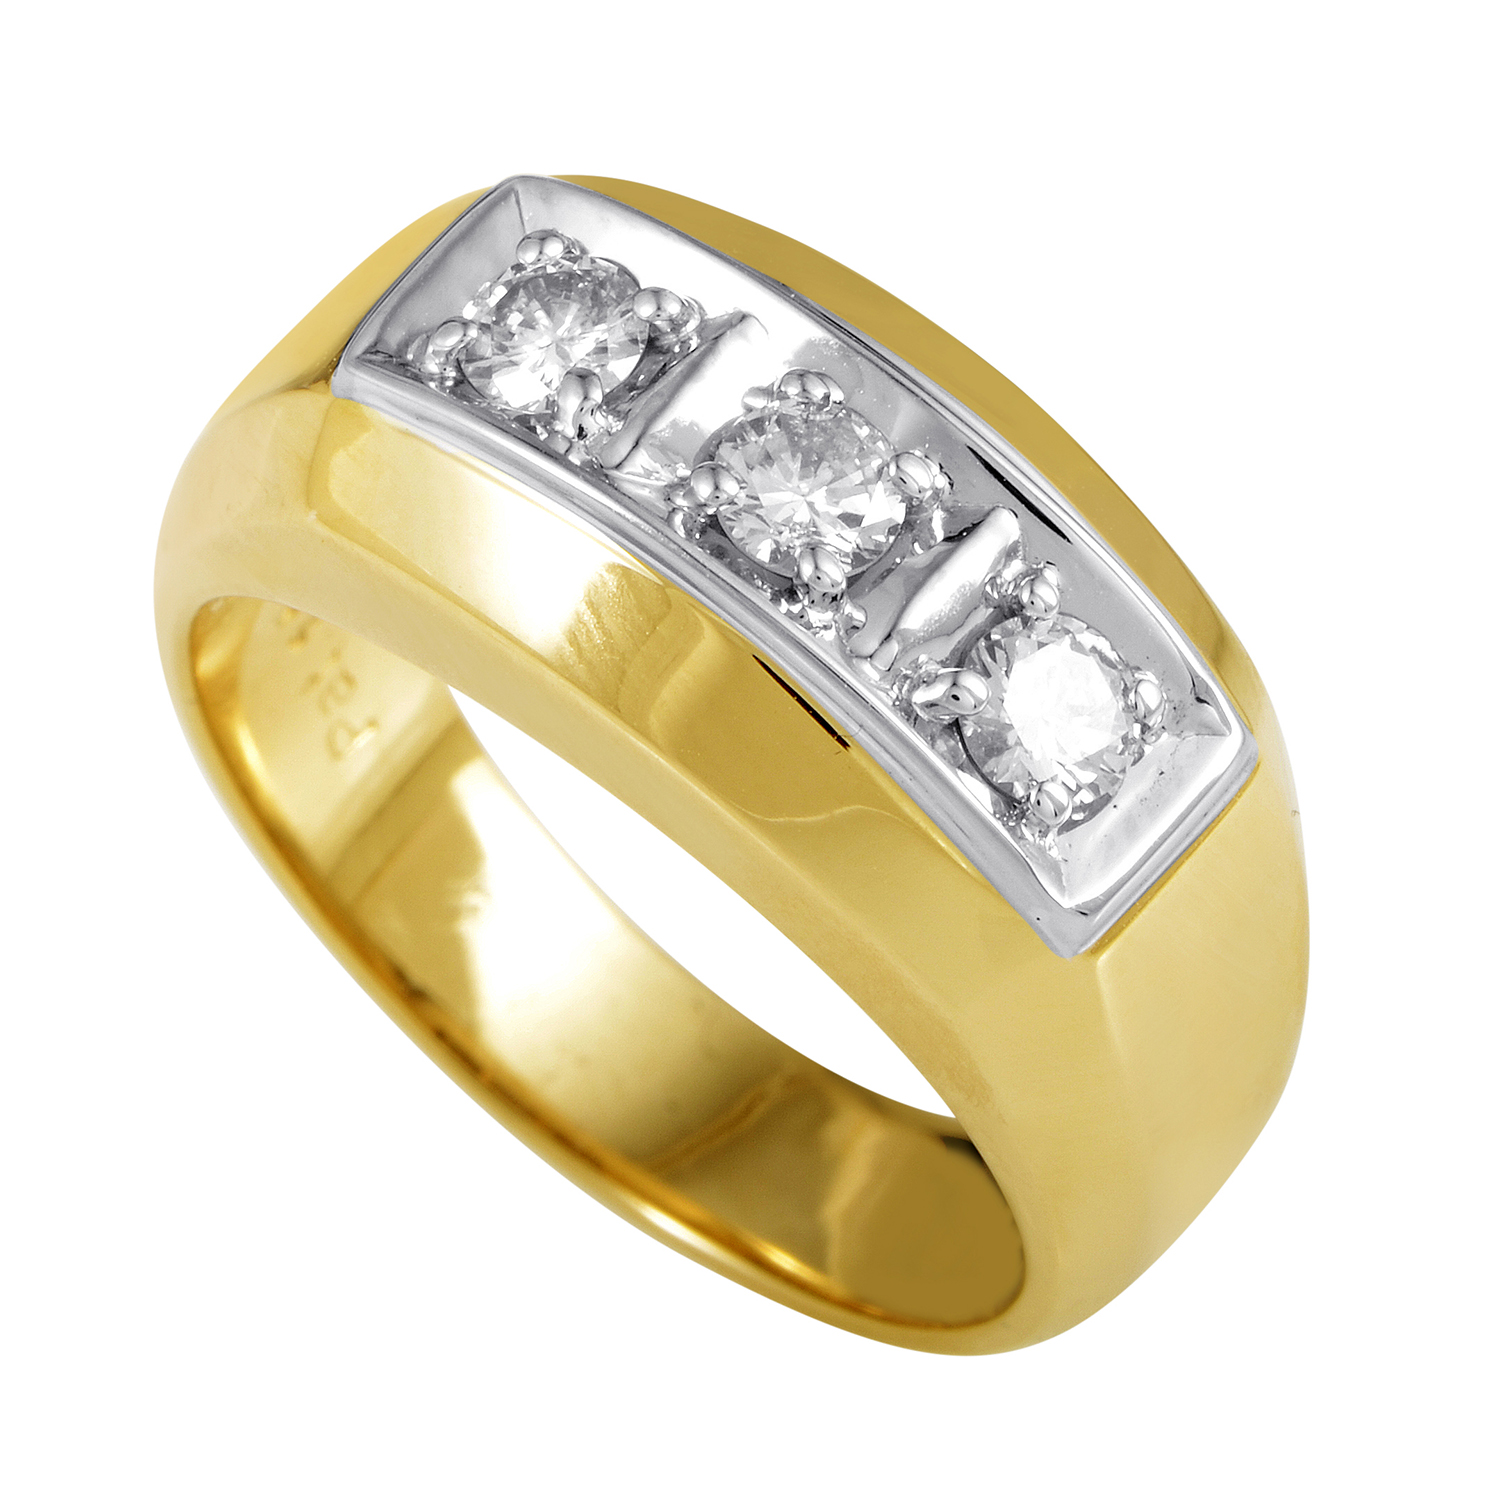 Men's 14K Yellow & White Gold Diamond Ring 04131X164E1